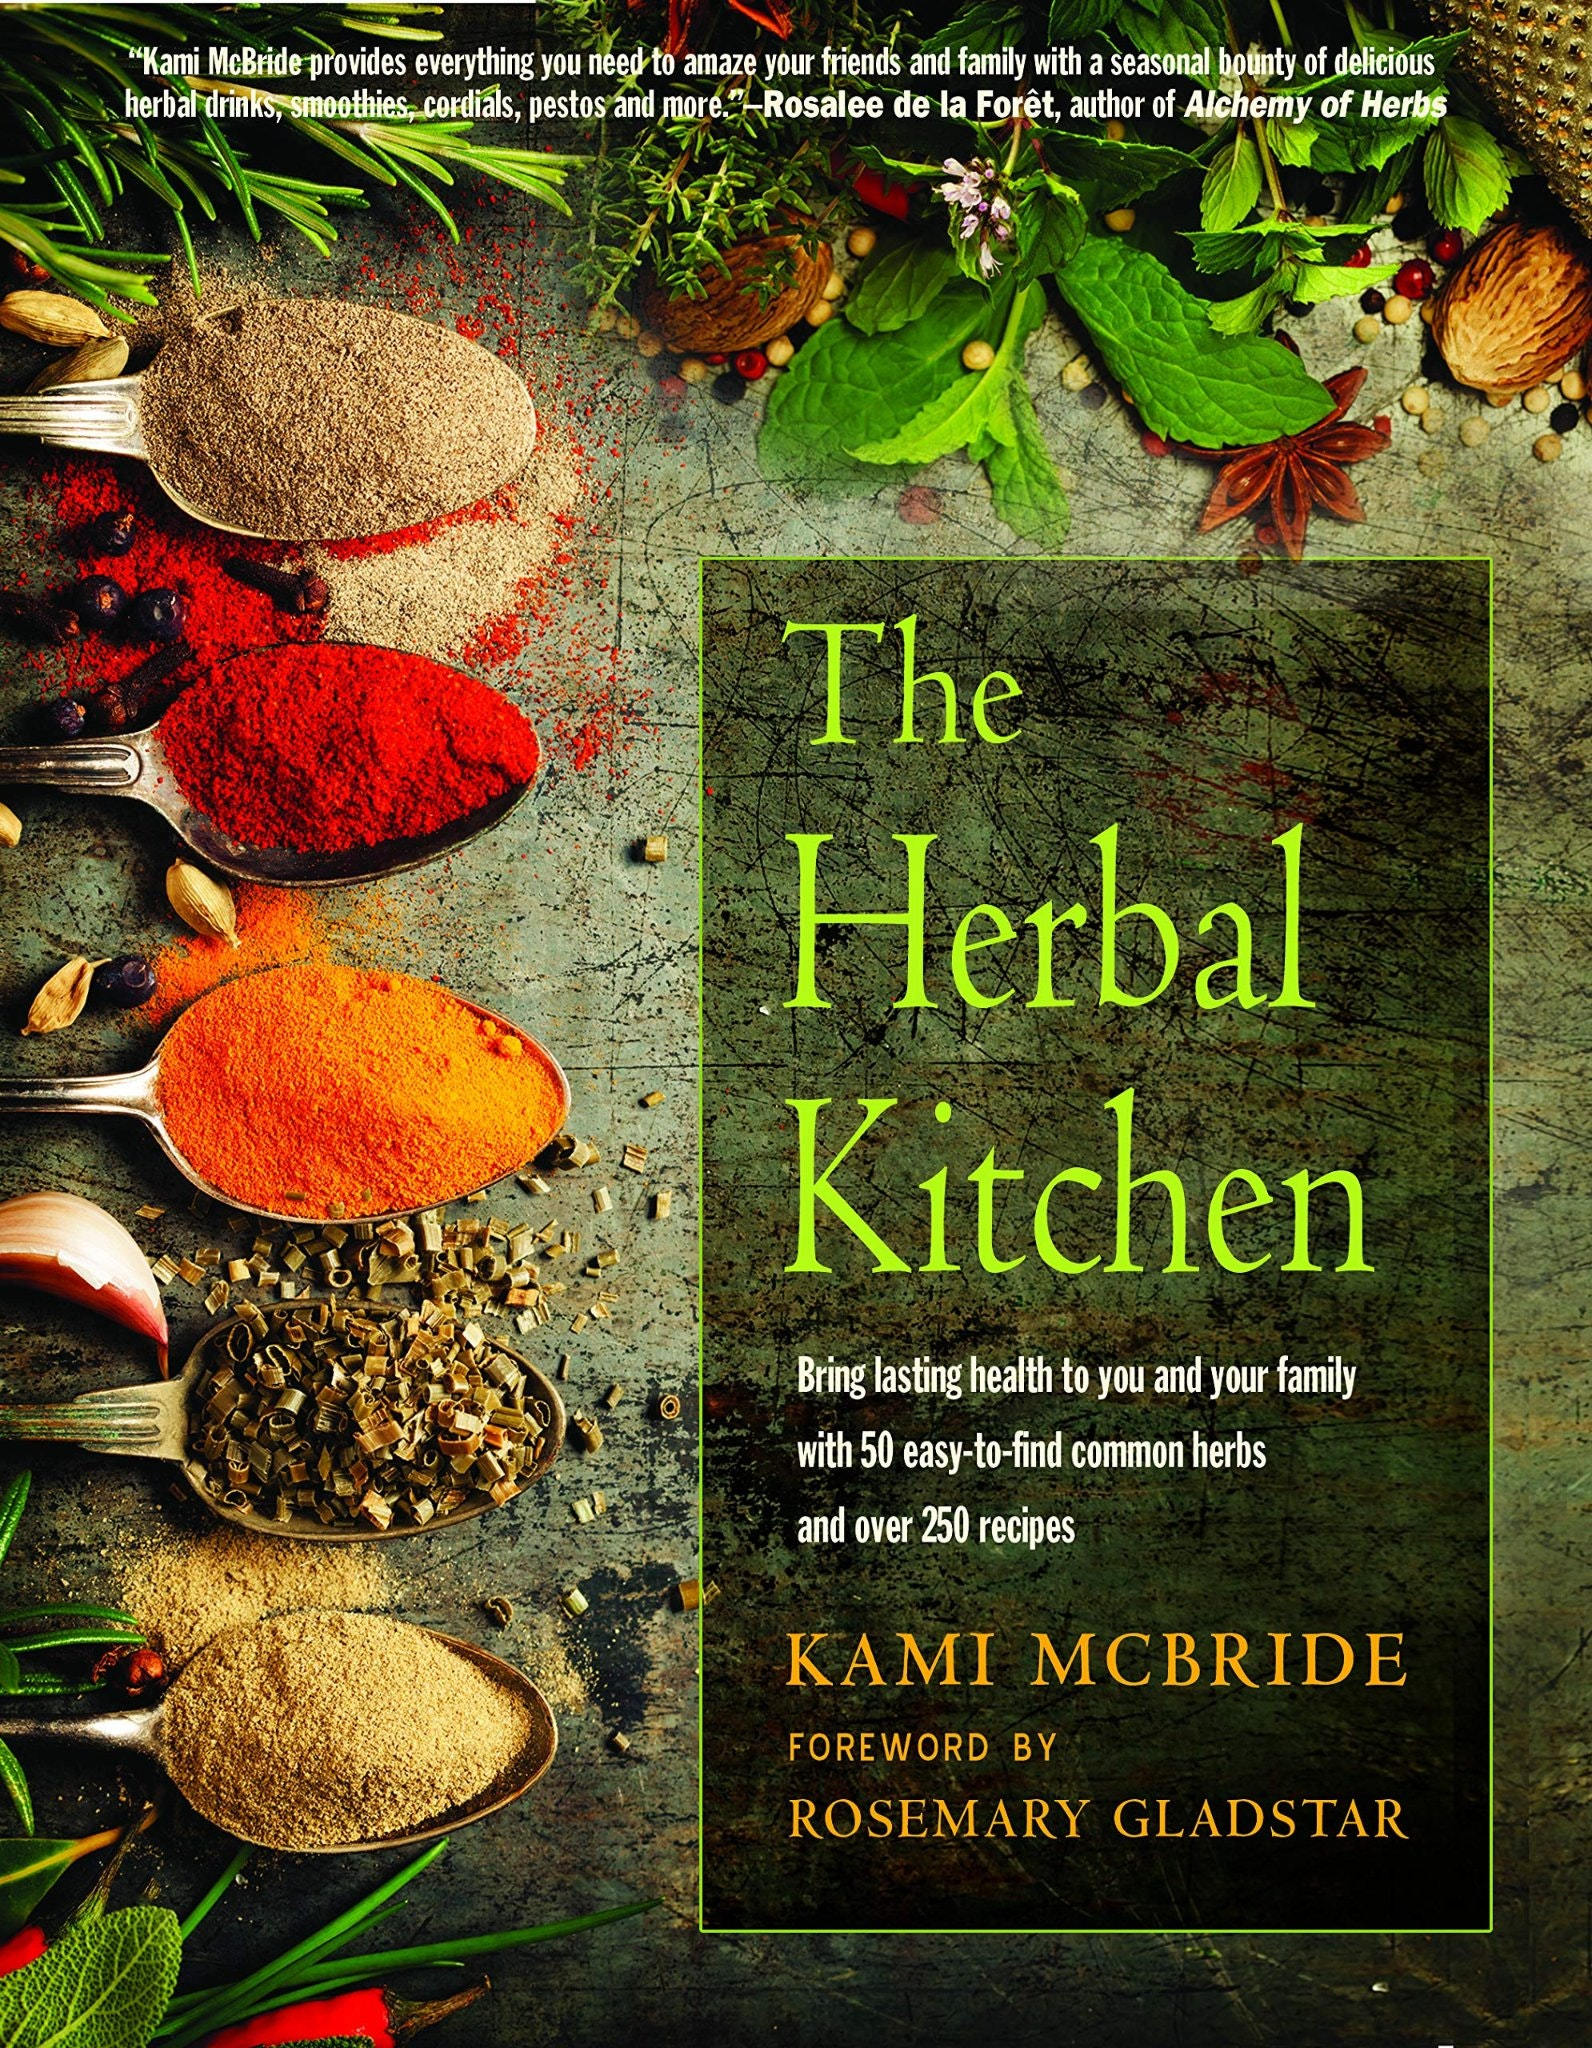 Recipes From the Herbal Kitchen